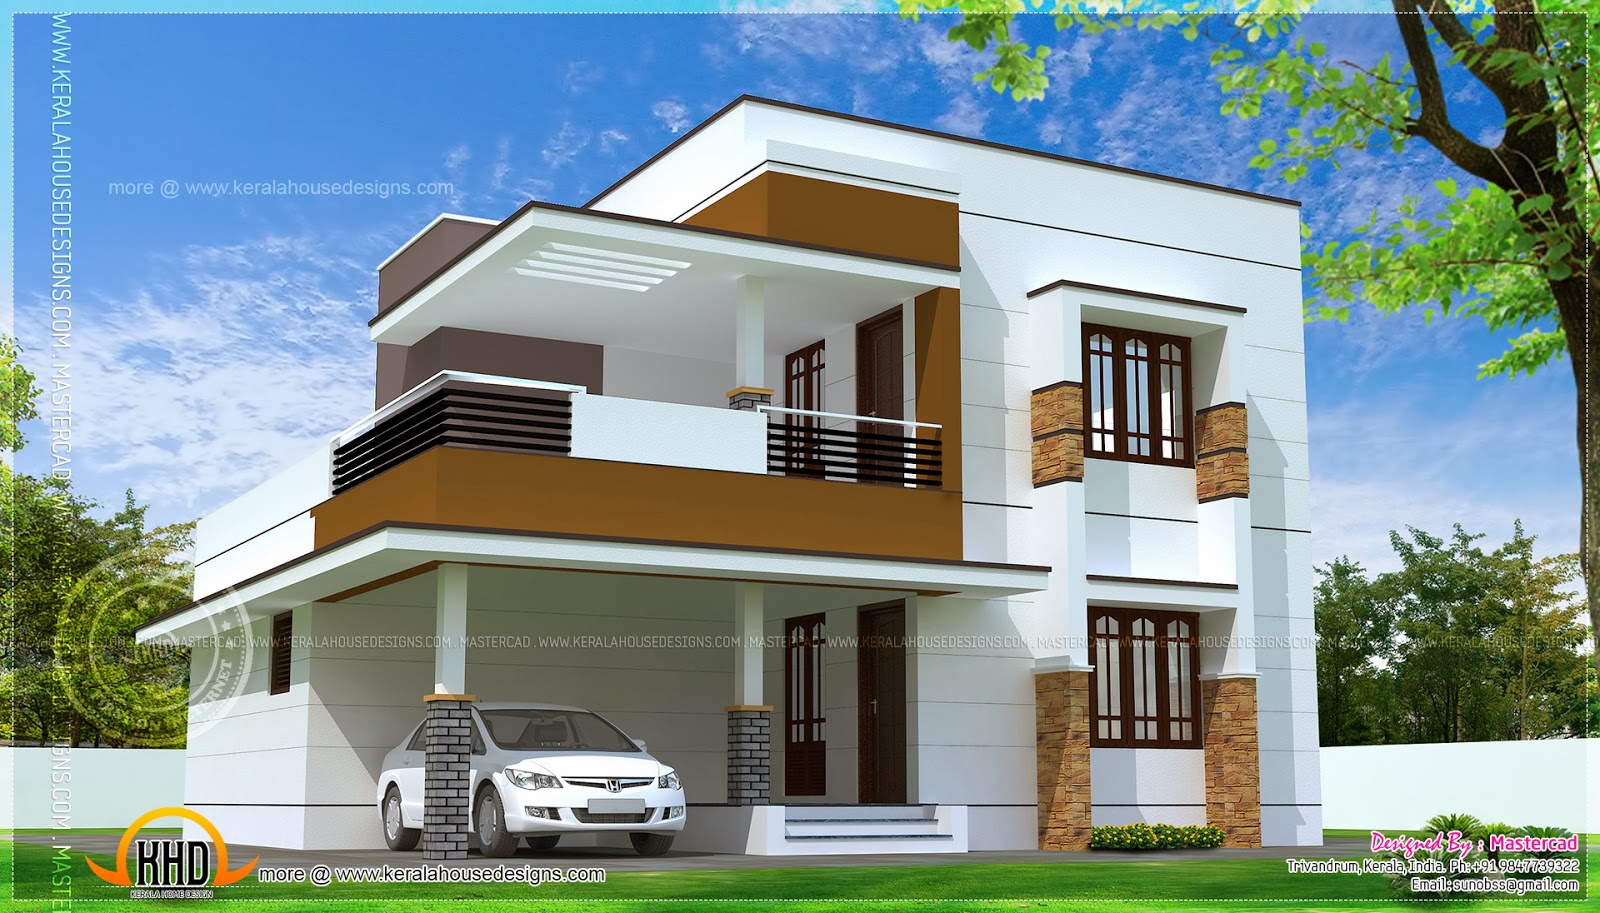 November 2013 kerala home design and floor plans Indian house structure design